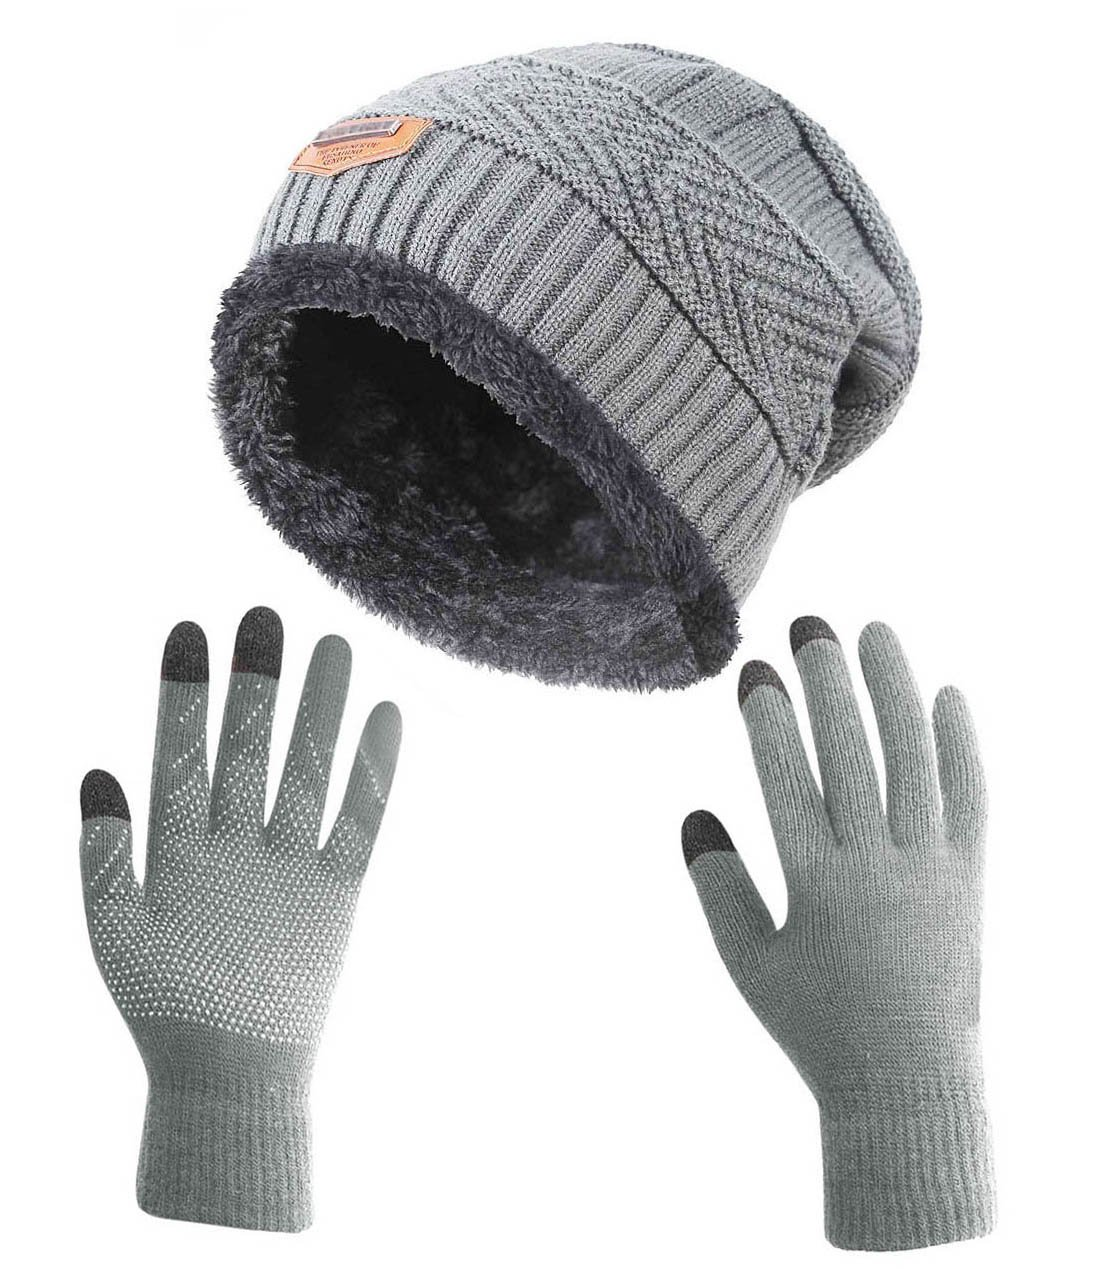 Winter Gloves Slouchy Beanie for Women HINDAWI Knit Warm Hat Skull Cap Touch Screen Mittens Grey